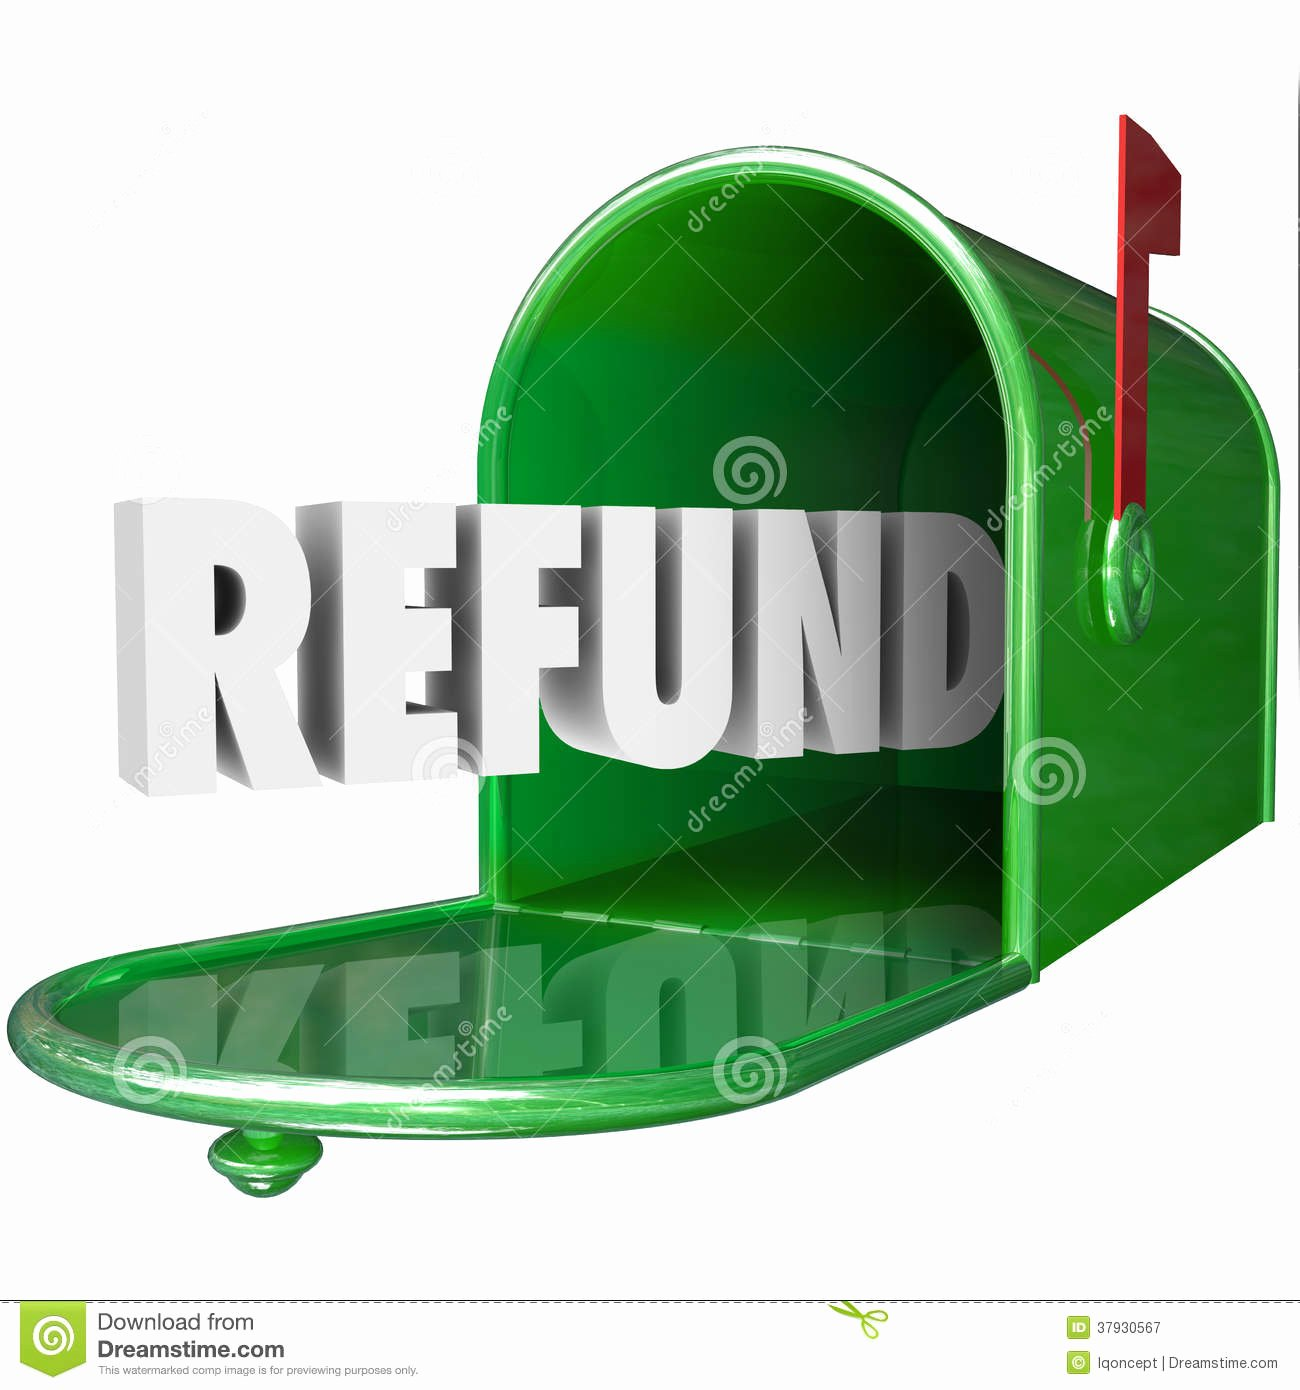 Product Received for Free Beautiful Refund Word Receive Money Back Mailbox Delivery Tax